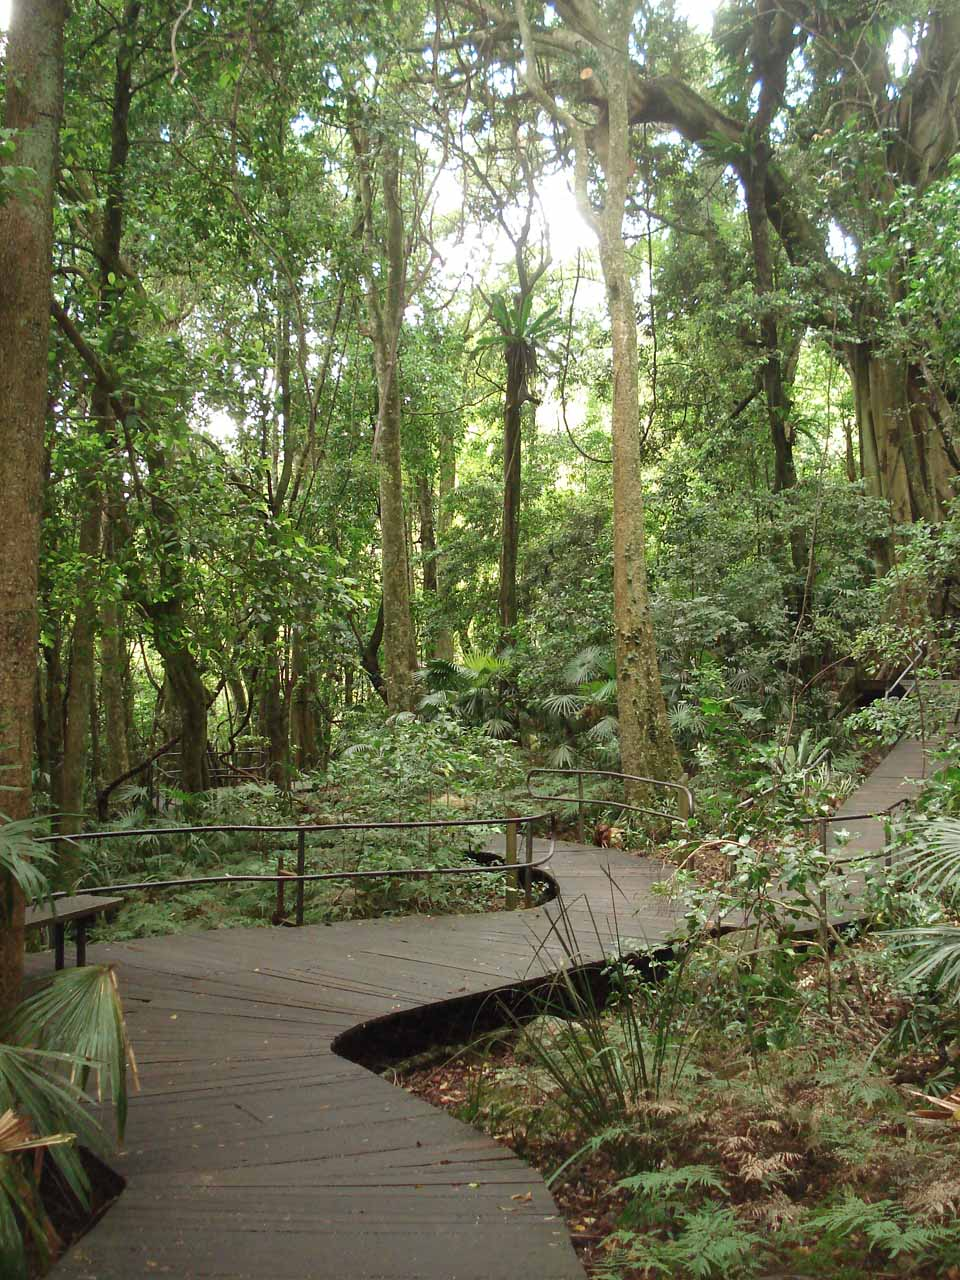 The first third of the hike was one-half of the boardwalk loop through the Minnamurra Rainforest